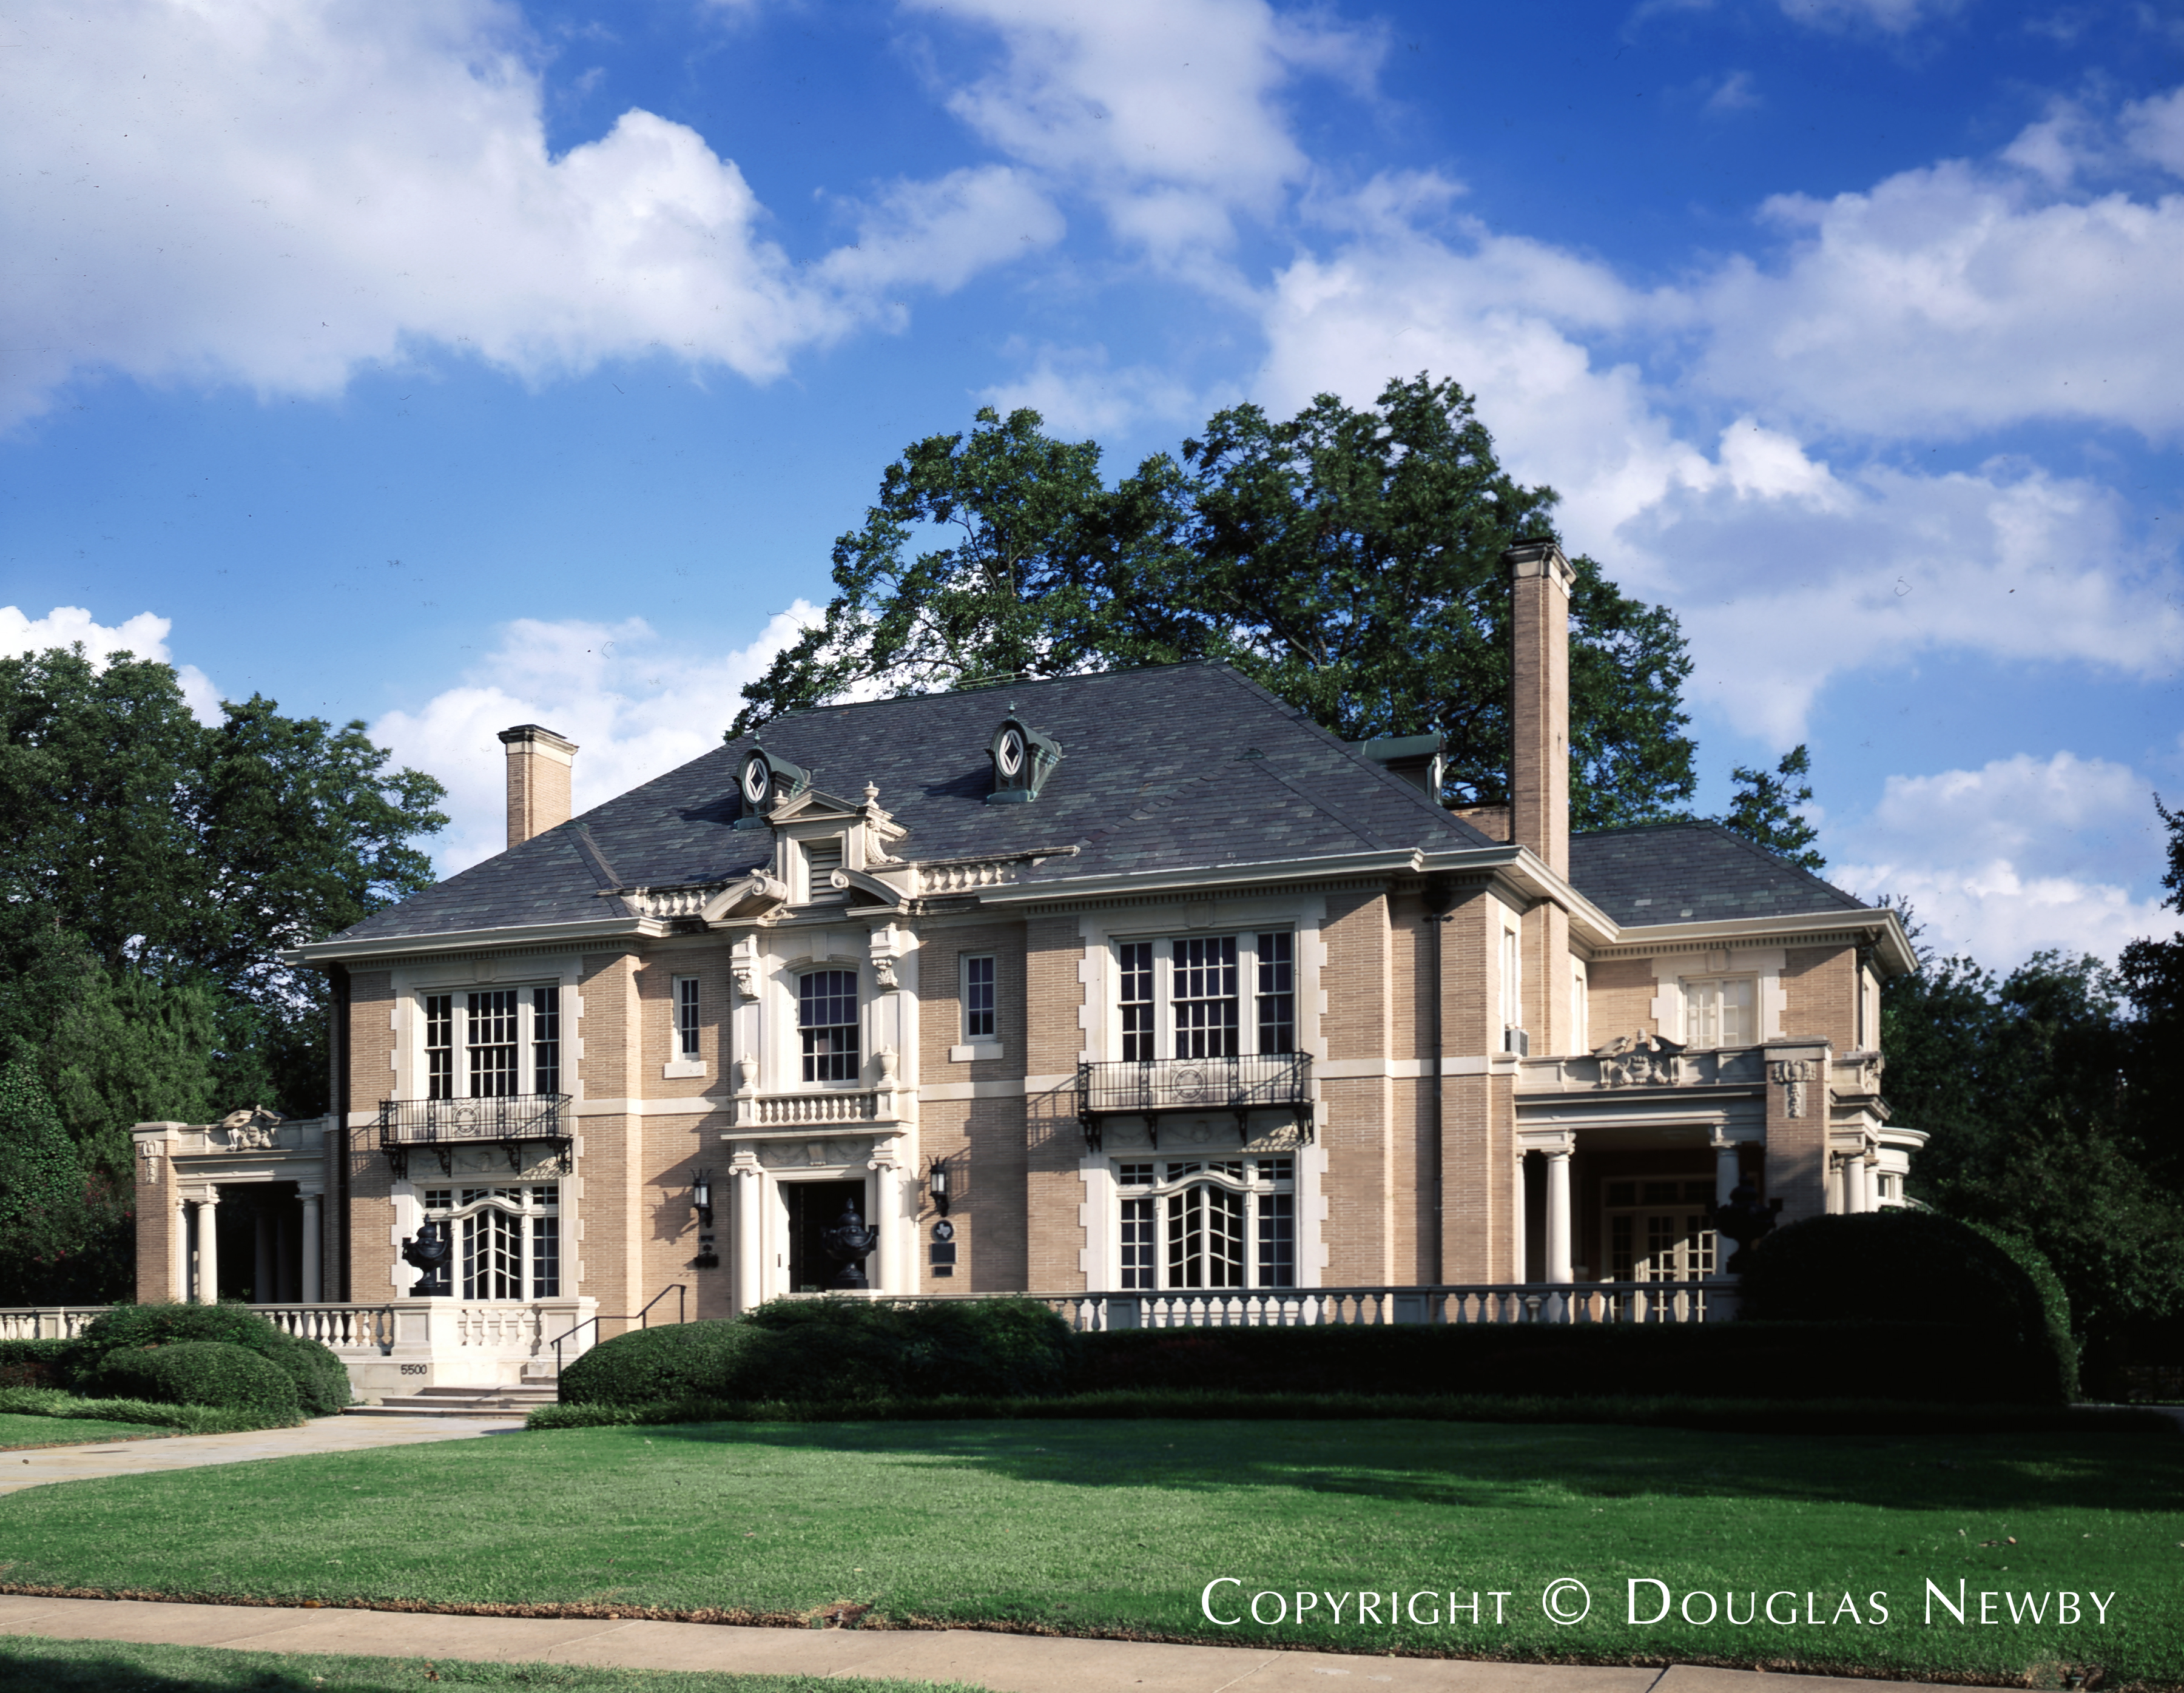 French Eclectic Homes Designed Primarily Between 1915 And 1945 Had Steeply Pitched Roofs Flared Eaves The Some Decorative Half Timbering